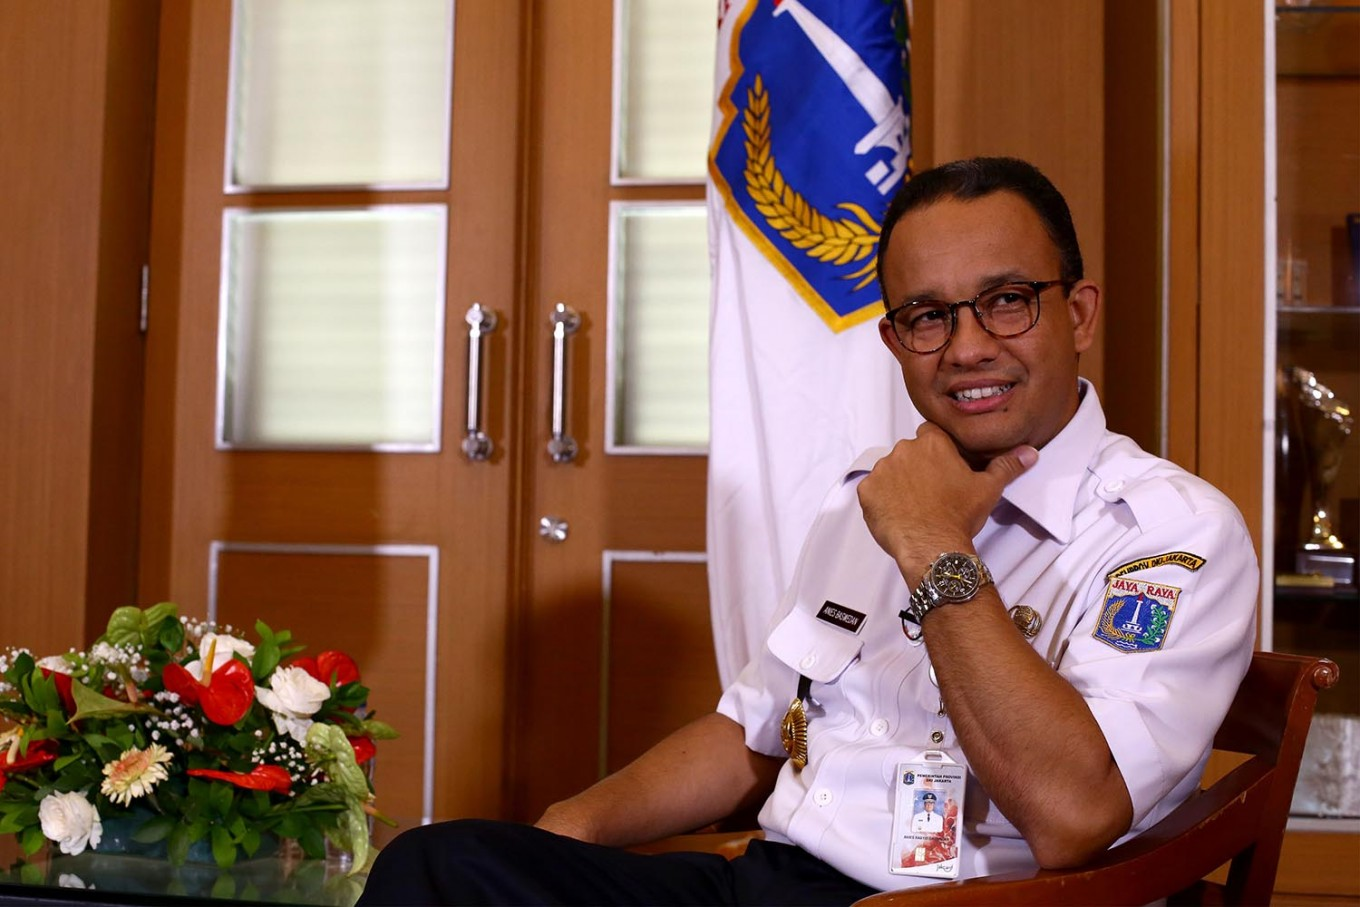 One Year In Anies Baswedan Still Has Much To Prove City The Jakarta Post